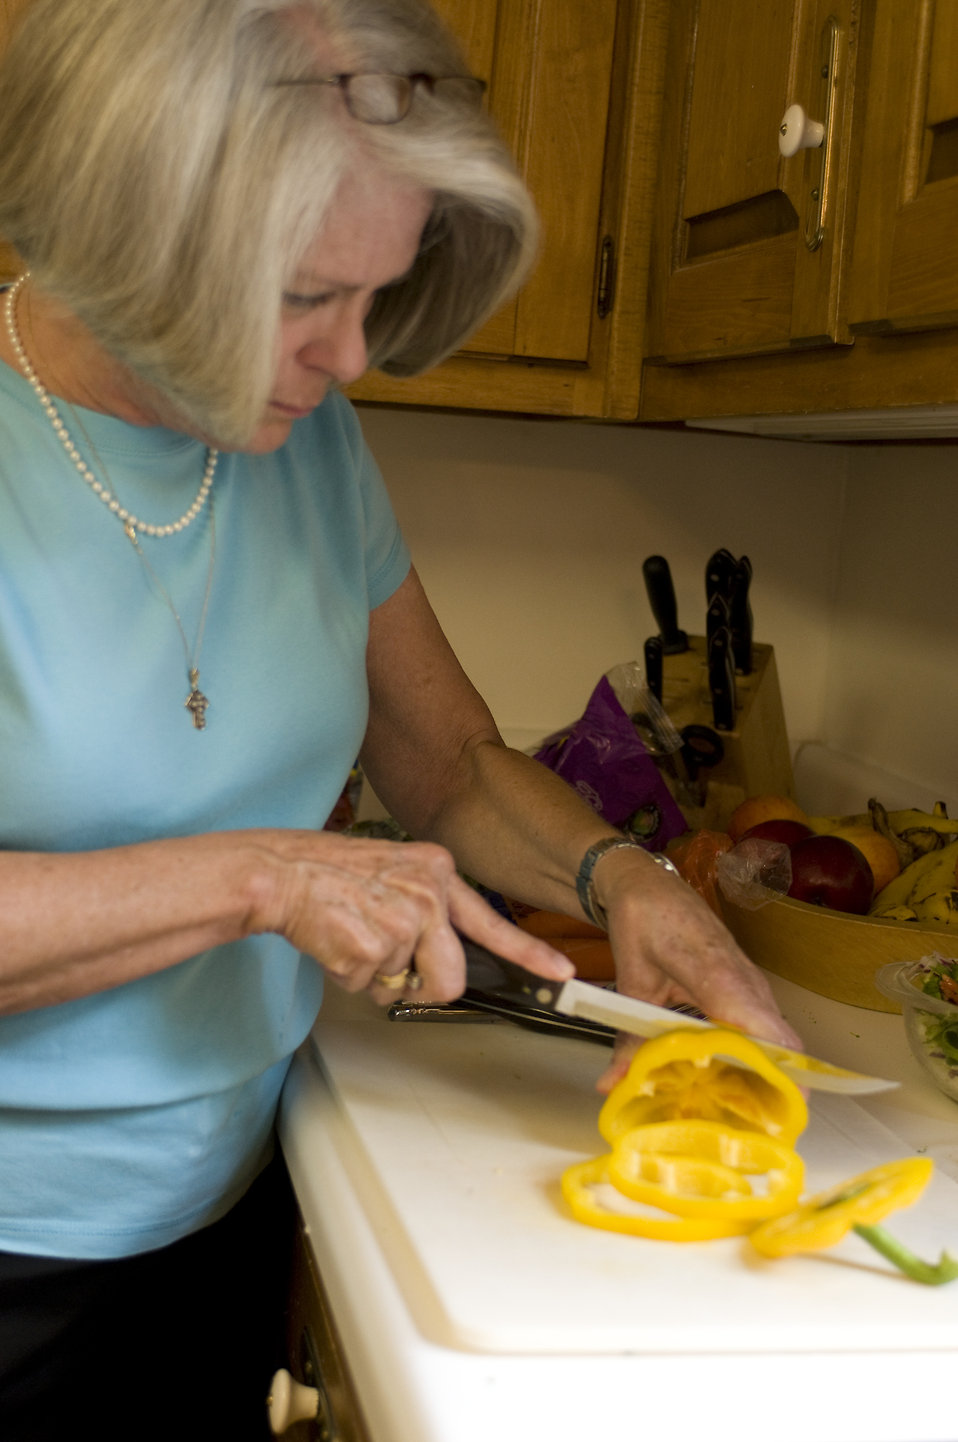 The woman depicted in this image was shown in her kitchen, as she was in the process of preparing a healthy salad, which can be seen in the background, contained in a large glass bowl. At this point in the salad preparation, she was cutting a yellow bell pepper atop a clean white cutting board, the slices of which would then be added to the salad mixture. Note the clean, orderly, uncluttered countertop, which is important to the maintenance of a proper kitchen environment. It is very important to prepare foods in as clean environment as possible, thereby, minimizing the possibility of introducing foodborne contaminants into the food preparation process.